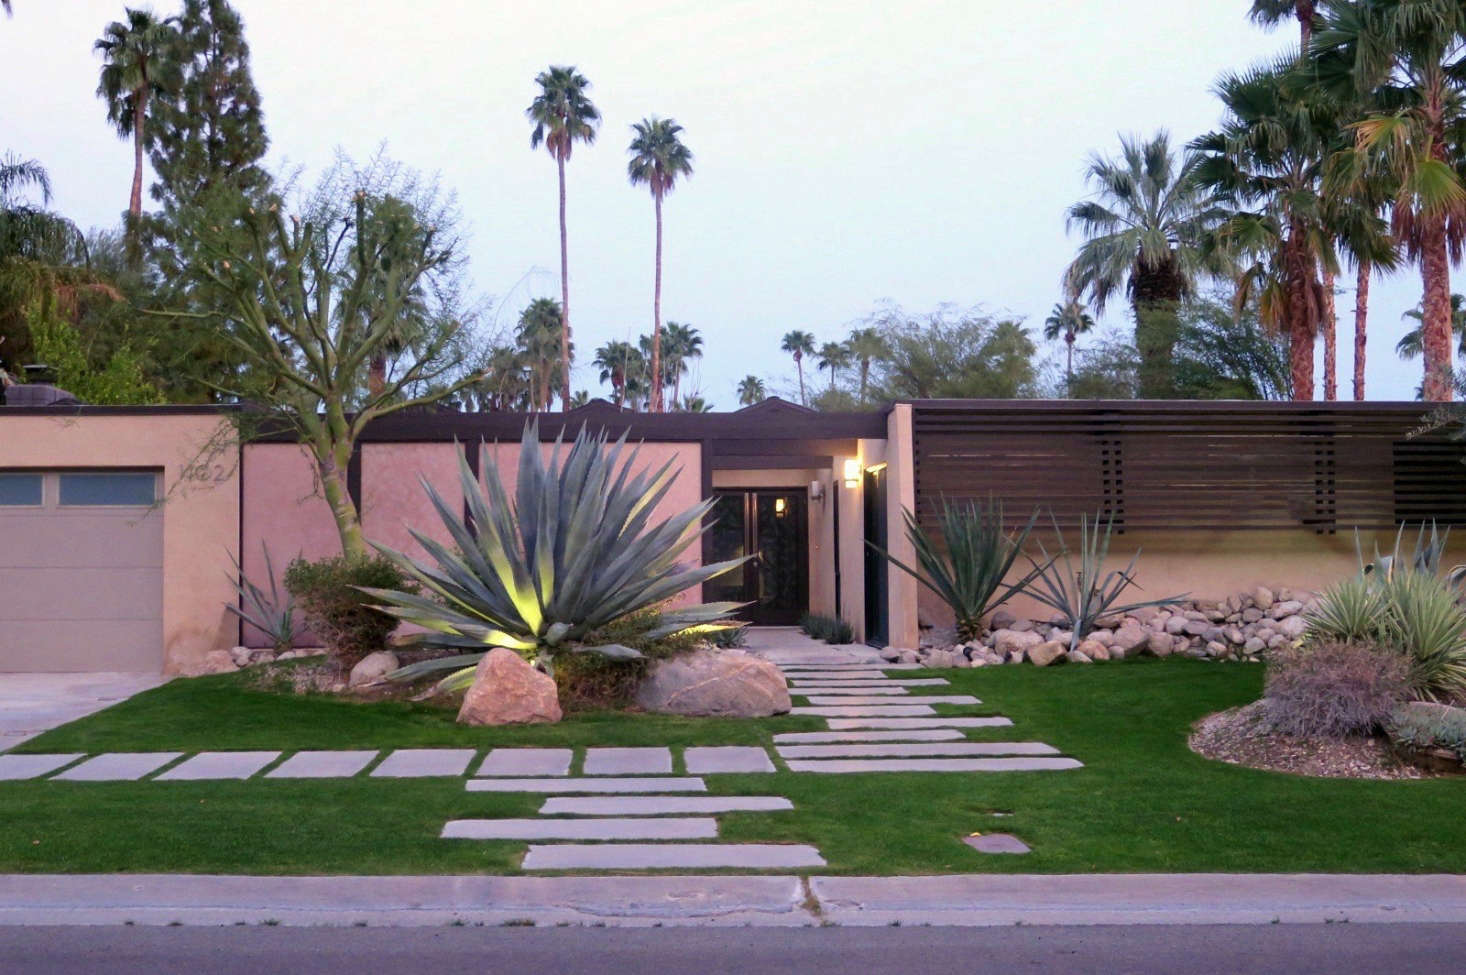 Required Reading: The Mid-Century Modern Garden by Ethne ...